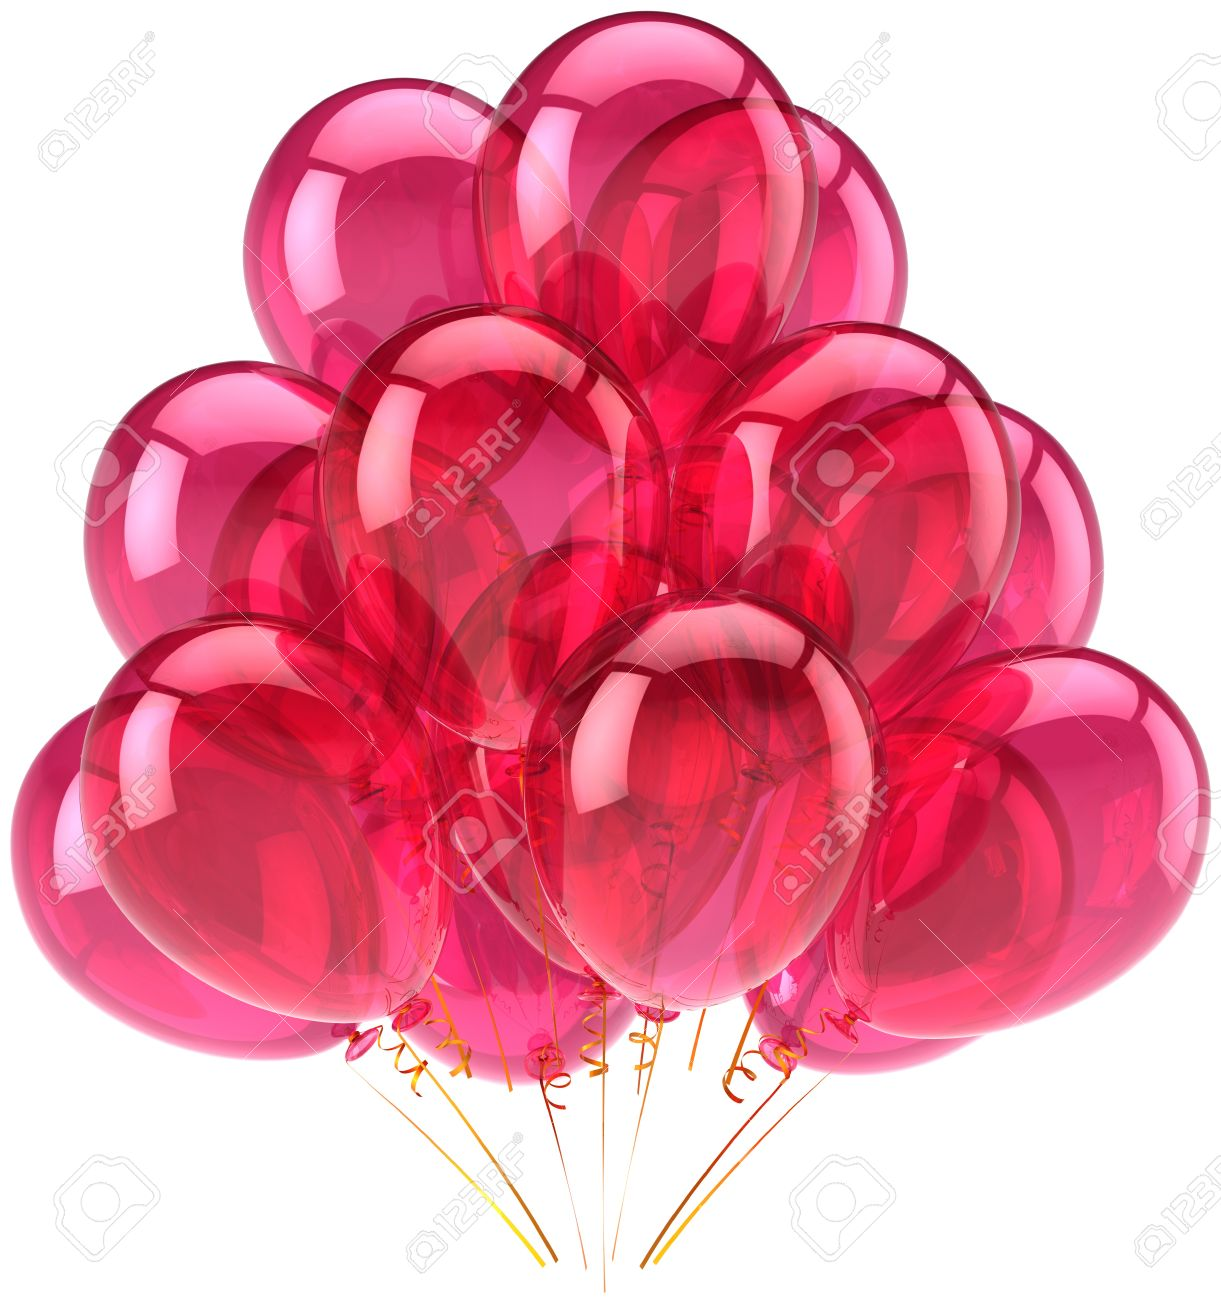 Party Balloons Pink Translucent Romantic Decoration. This Is.